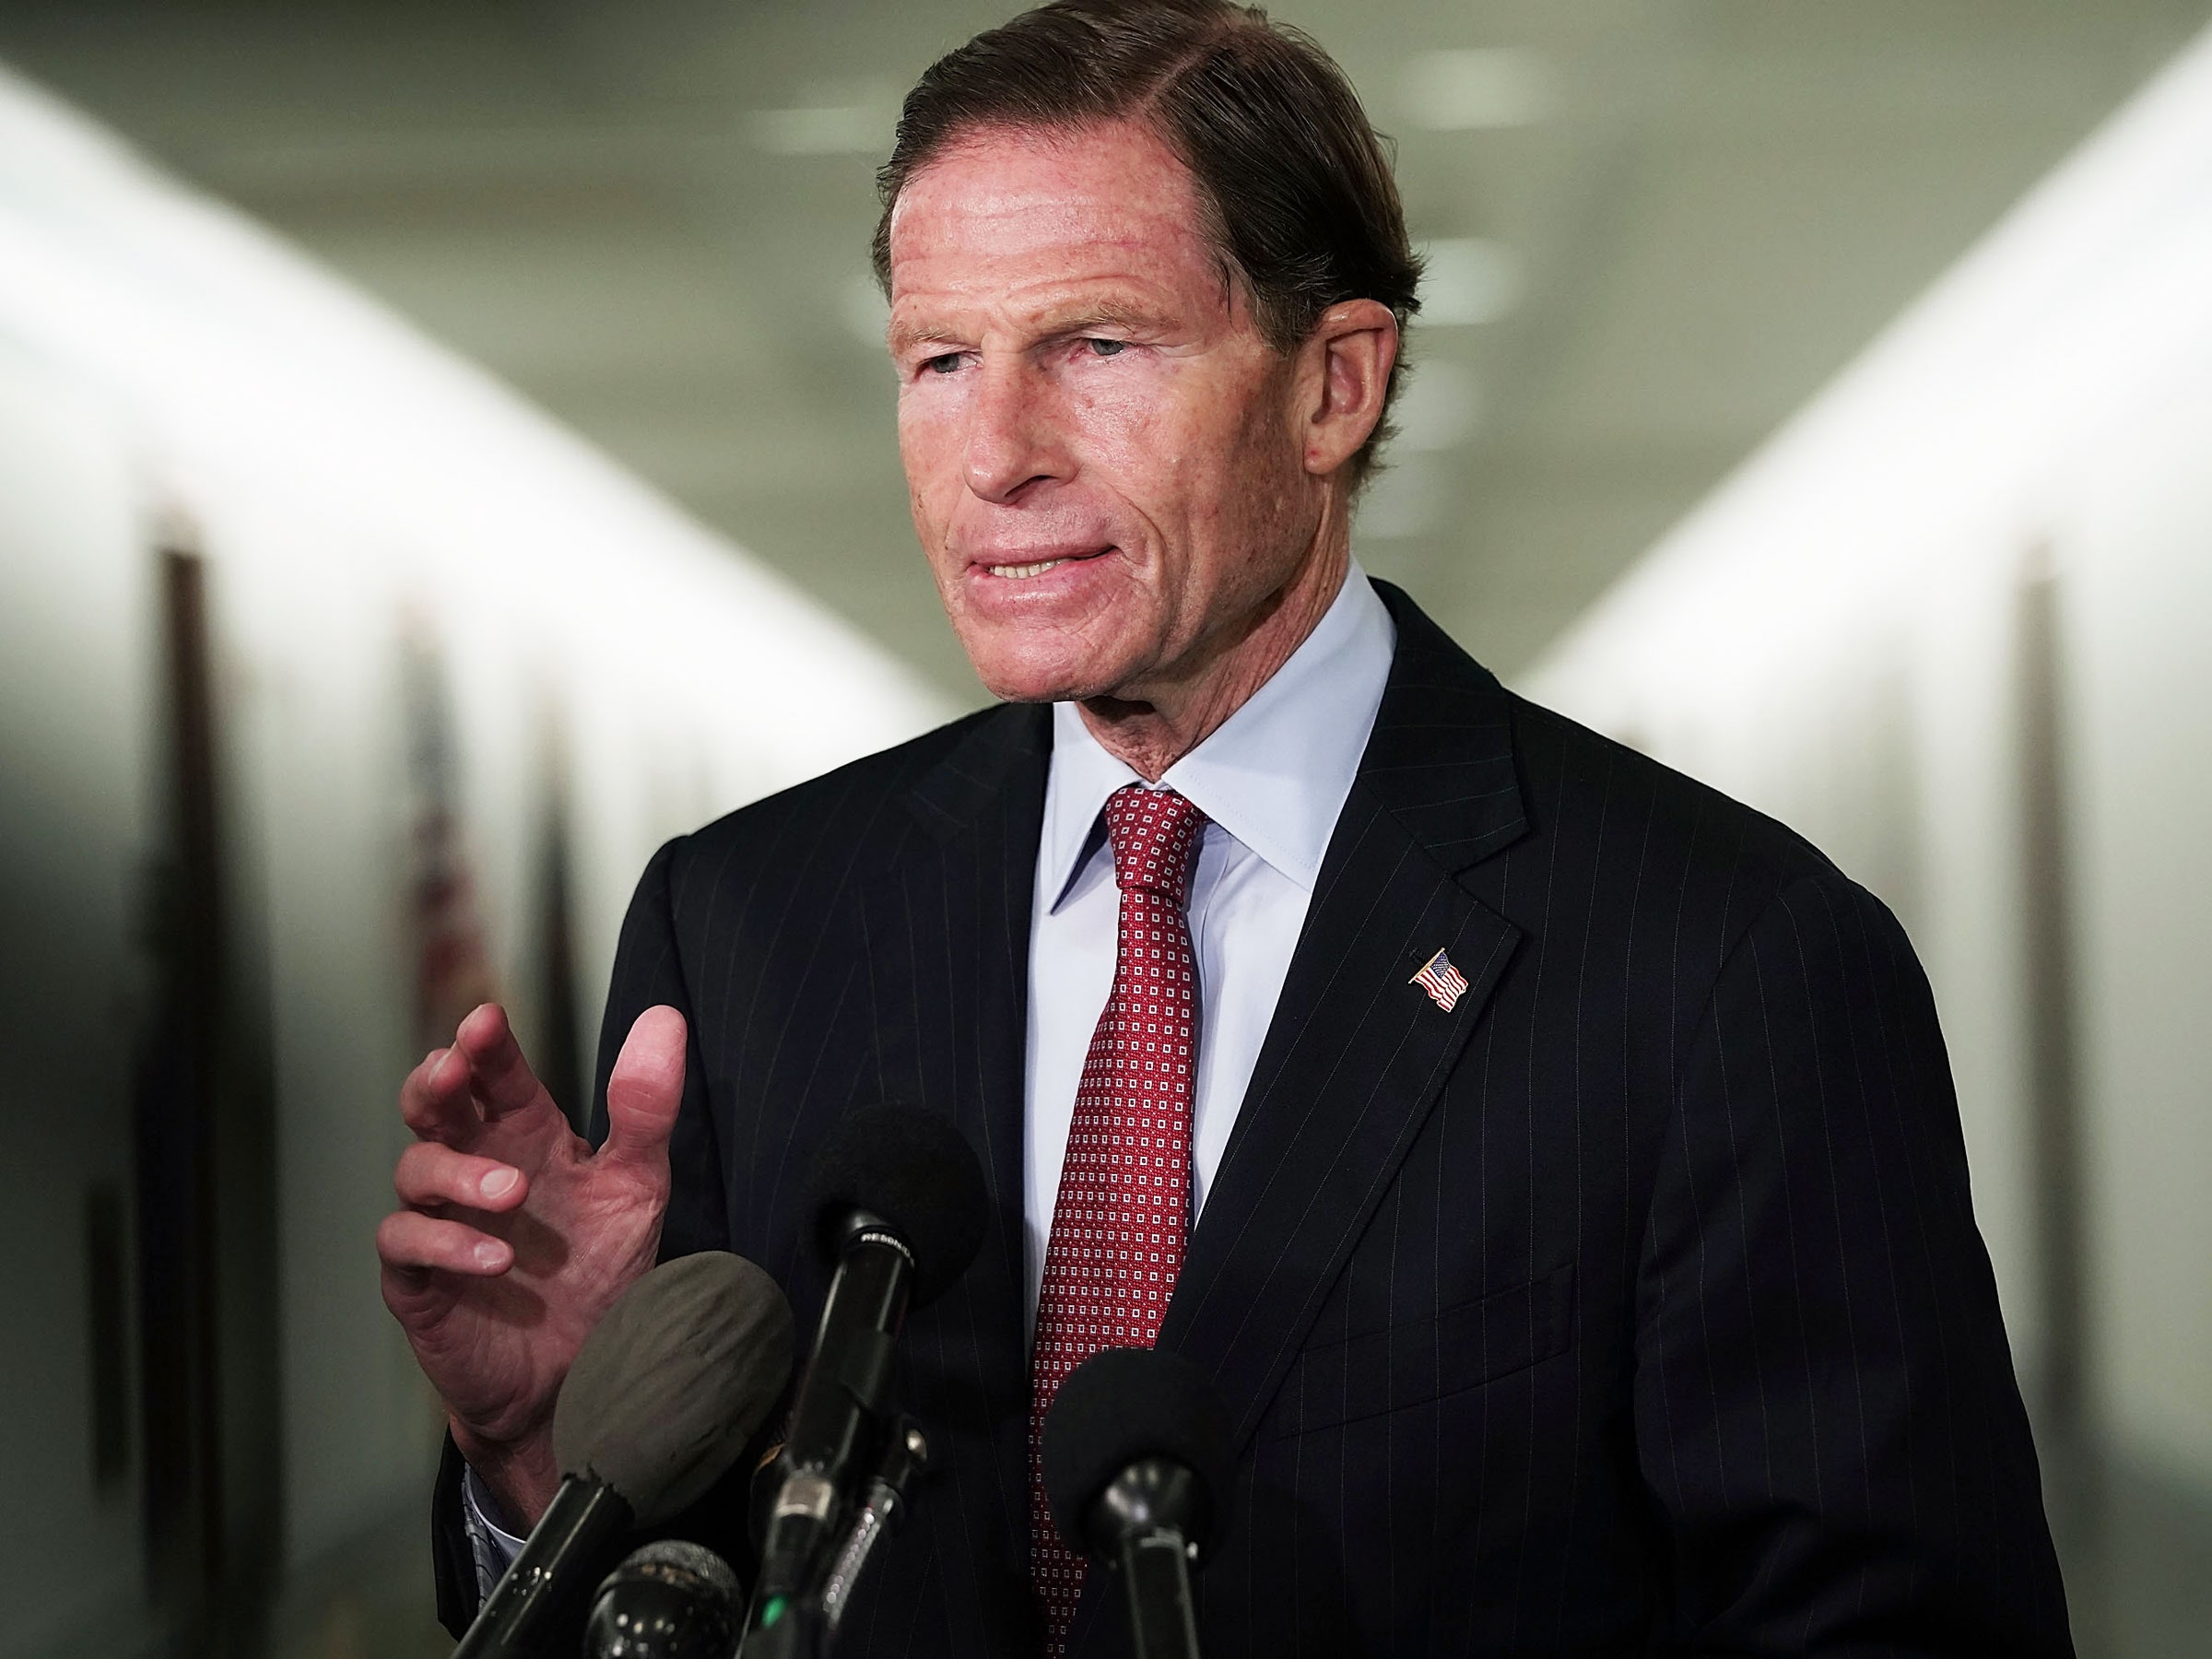 Richard Blumenthal Contact Number, Email, Fan Mail, Address, Biography, Agent, Manager, Mailing address, Contact Info, Mailing Addresses